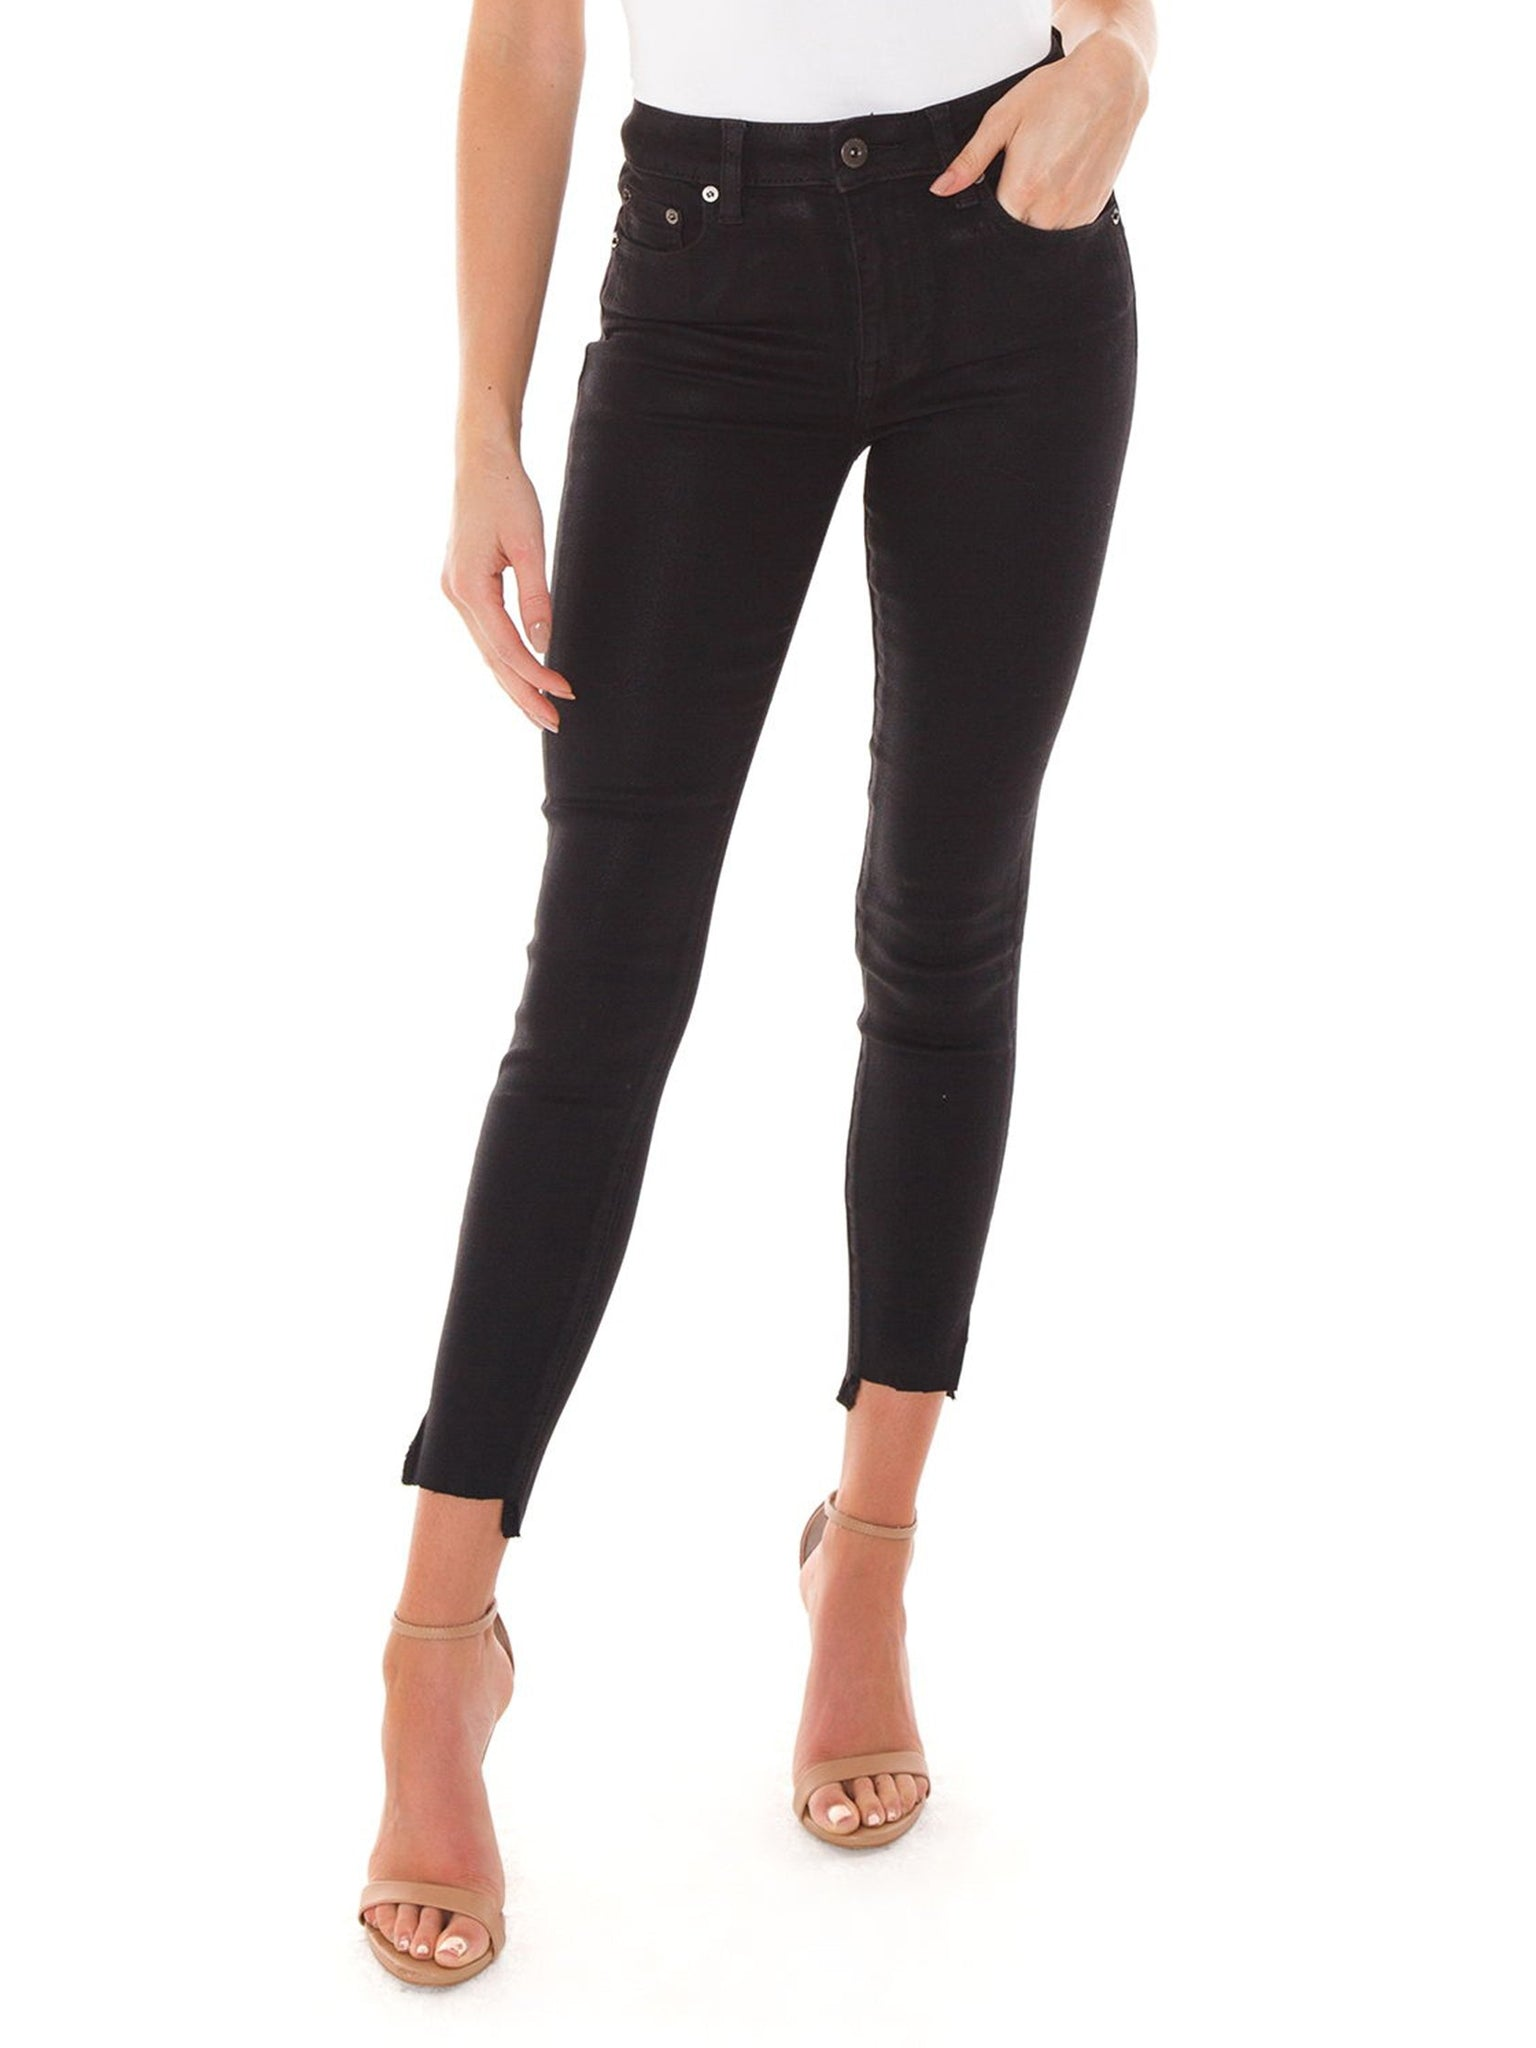 Aline high rise skinny black pant slick Pistola denim. Shiny, side bottom slits, shorter front hem. Blush and Lace, Oakville, boutique, pants, classy, fashionable, denim.